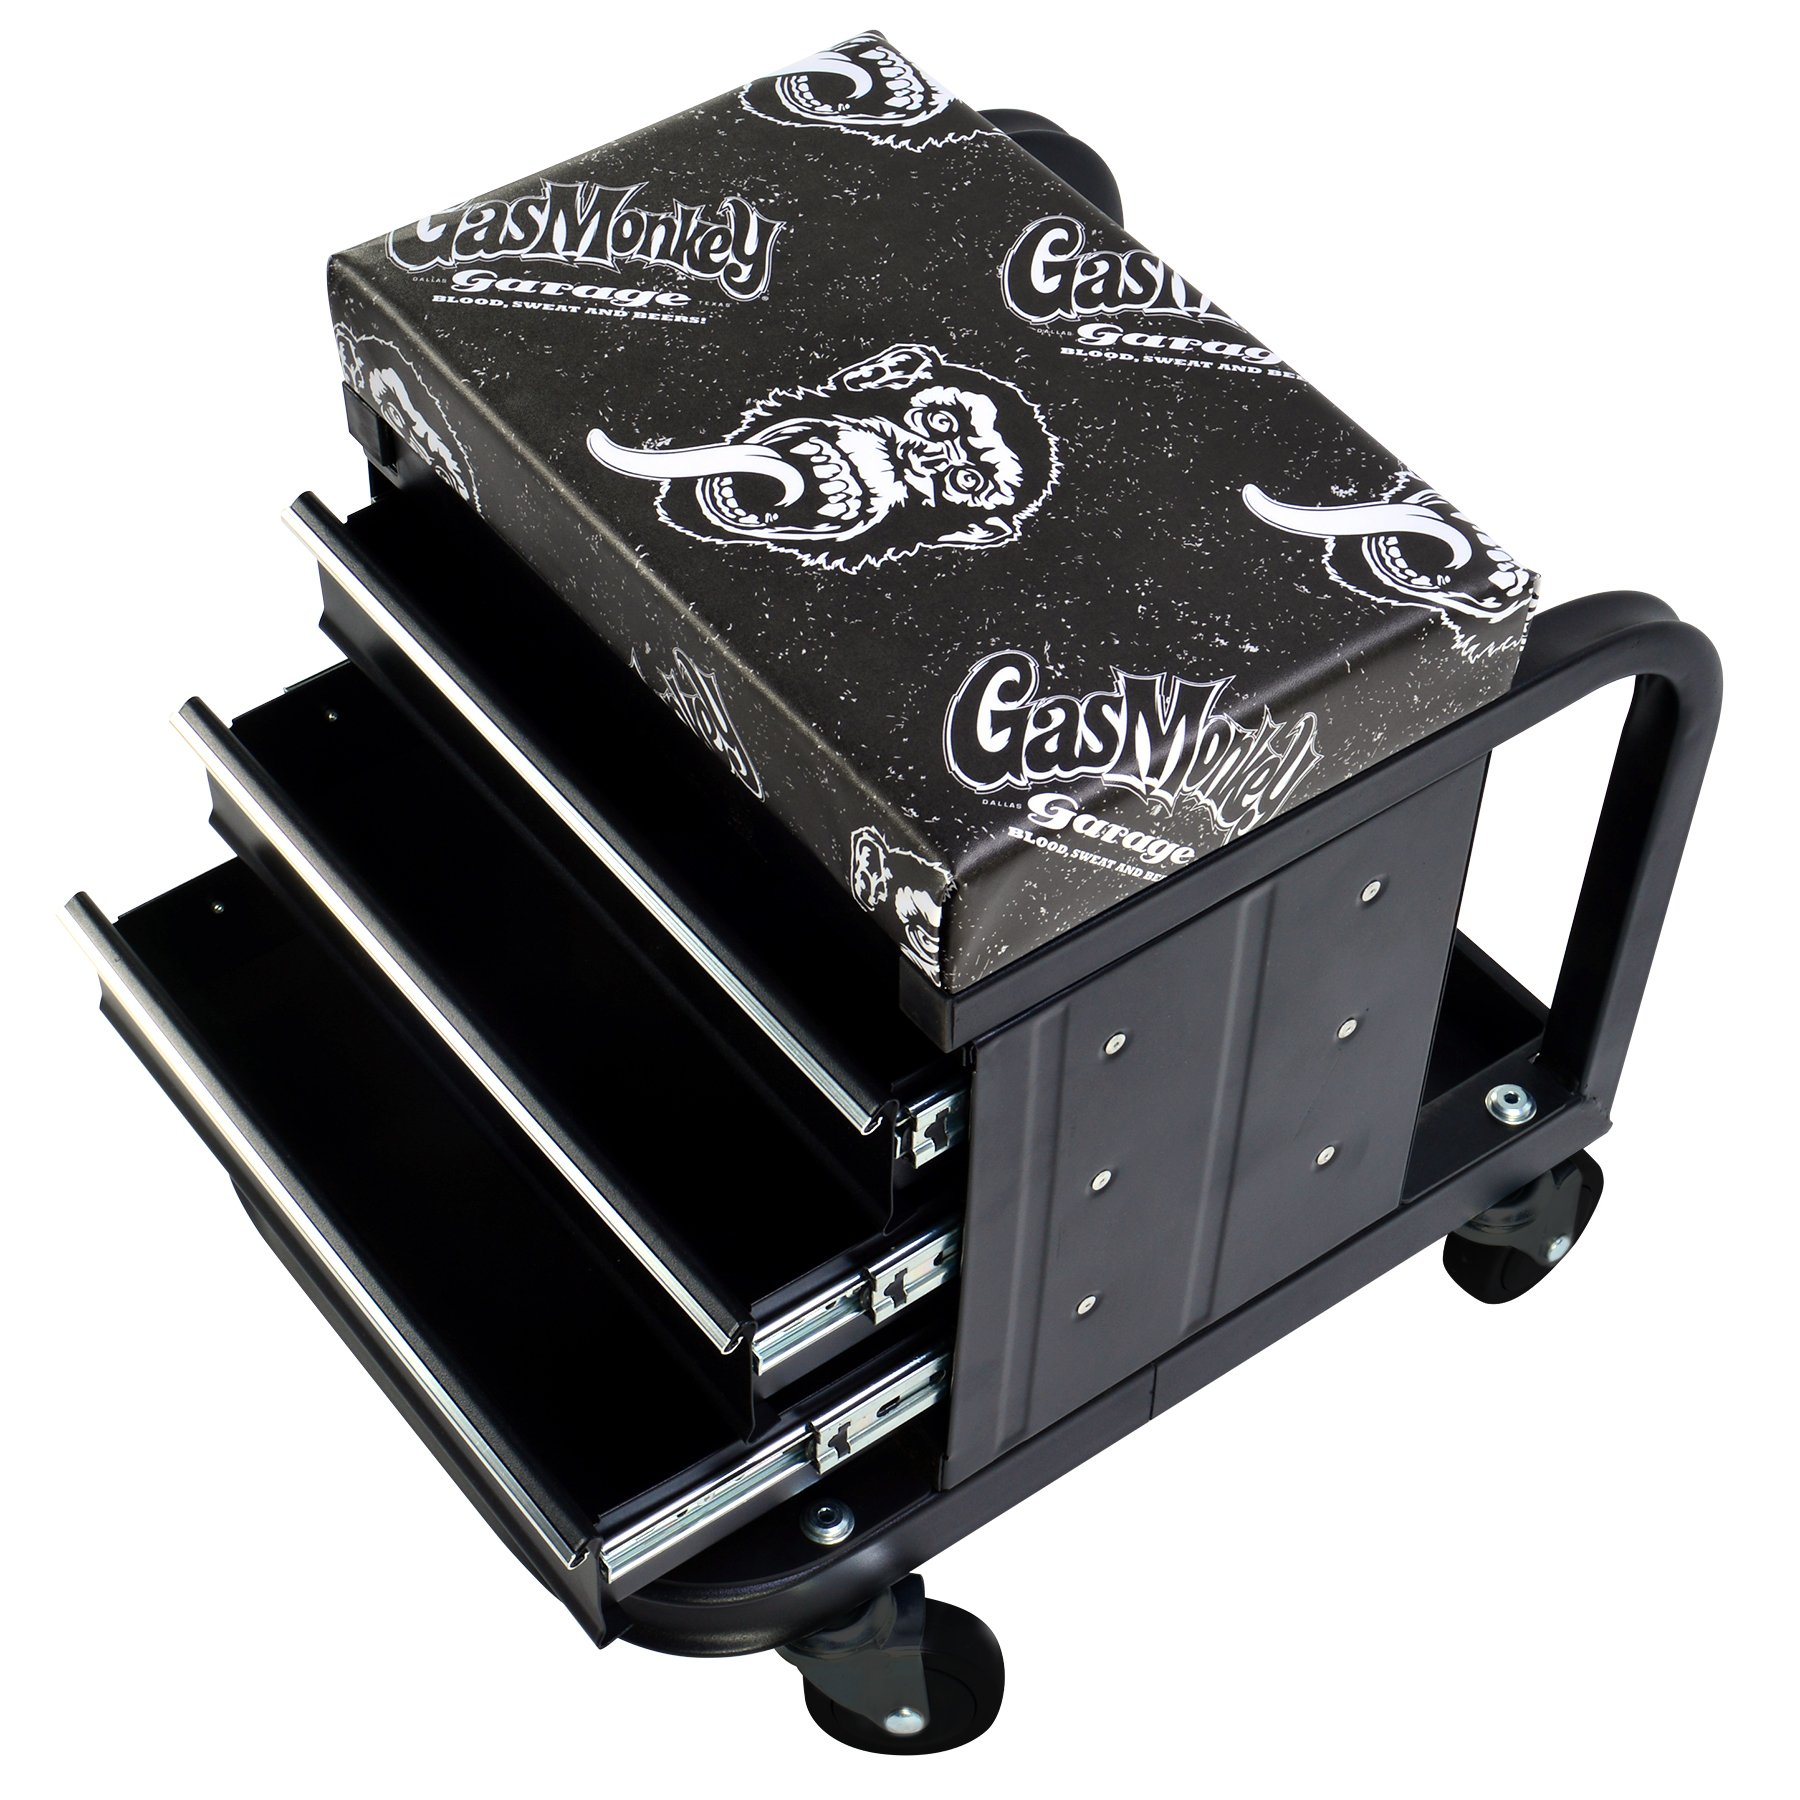 Gas Monkey Creeper Seat and Tool Box Combo - 3-Drawers Toolbox with 4 Rolling Casters - 450 Lbs Capacity